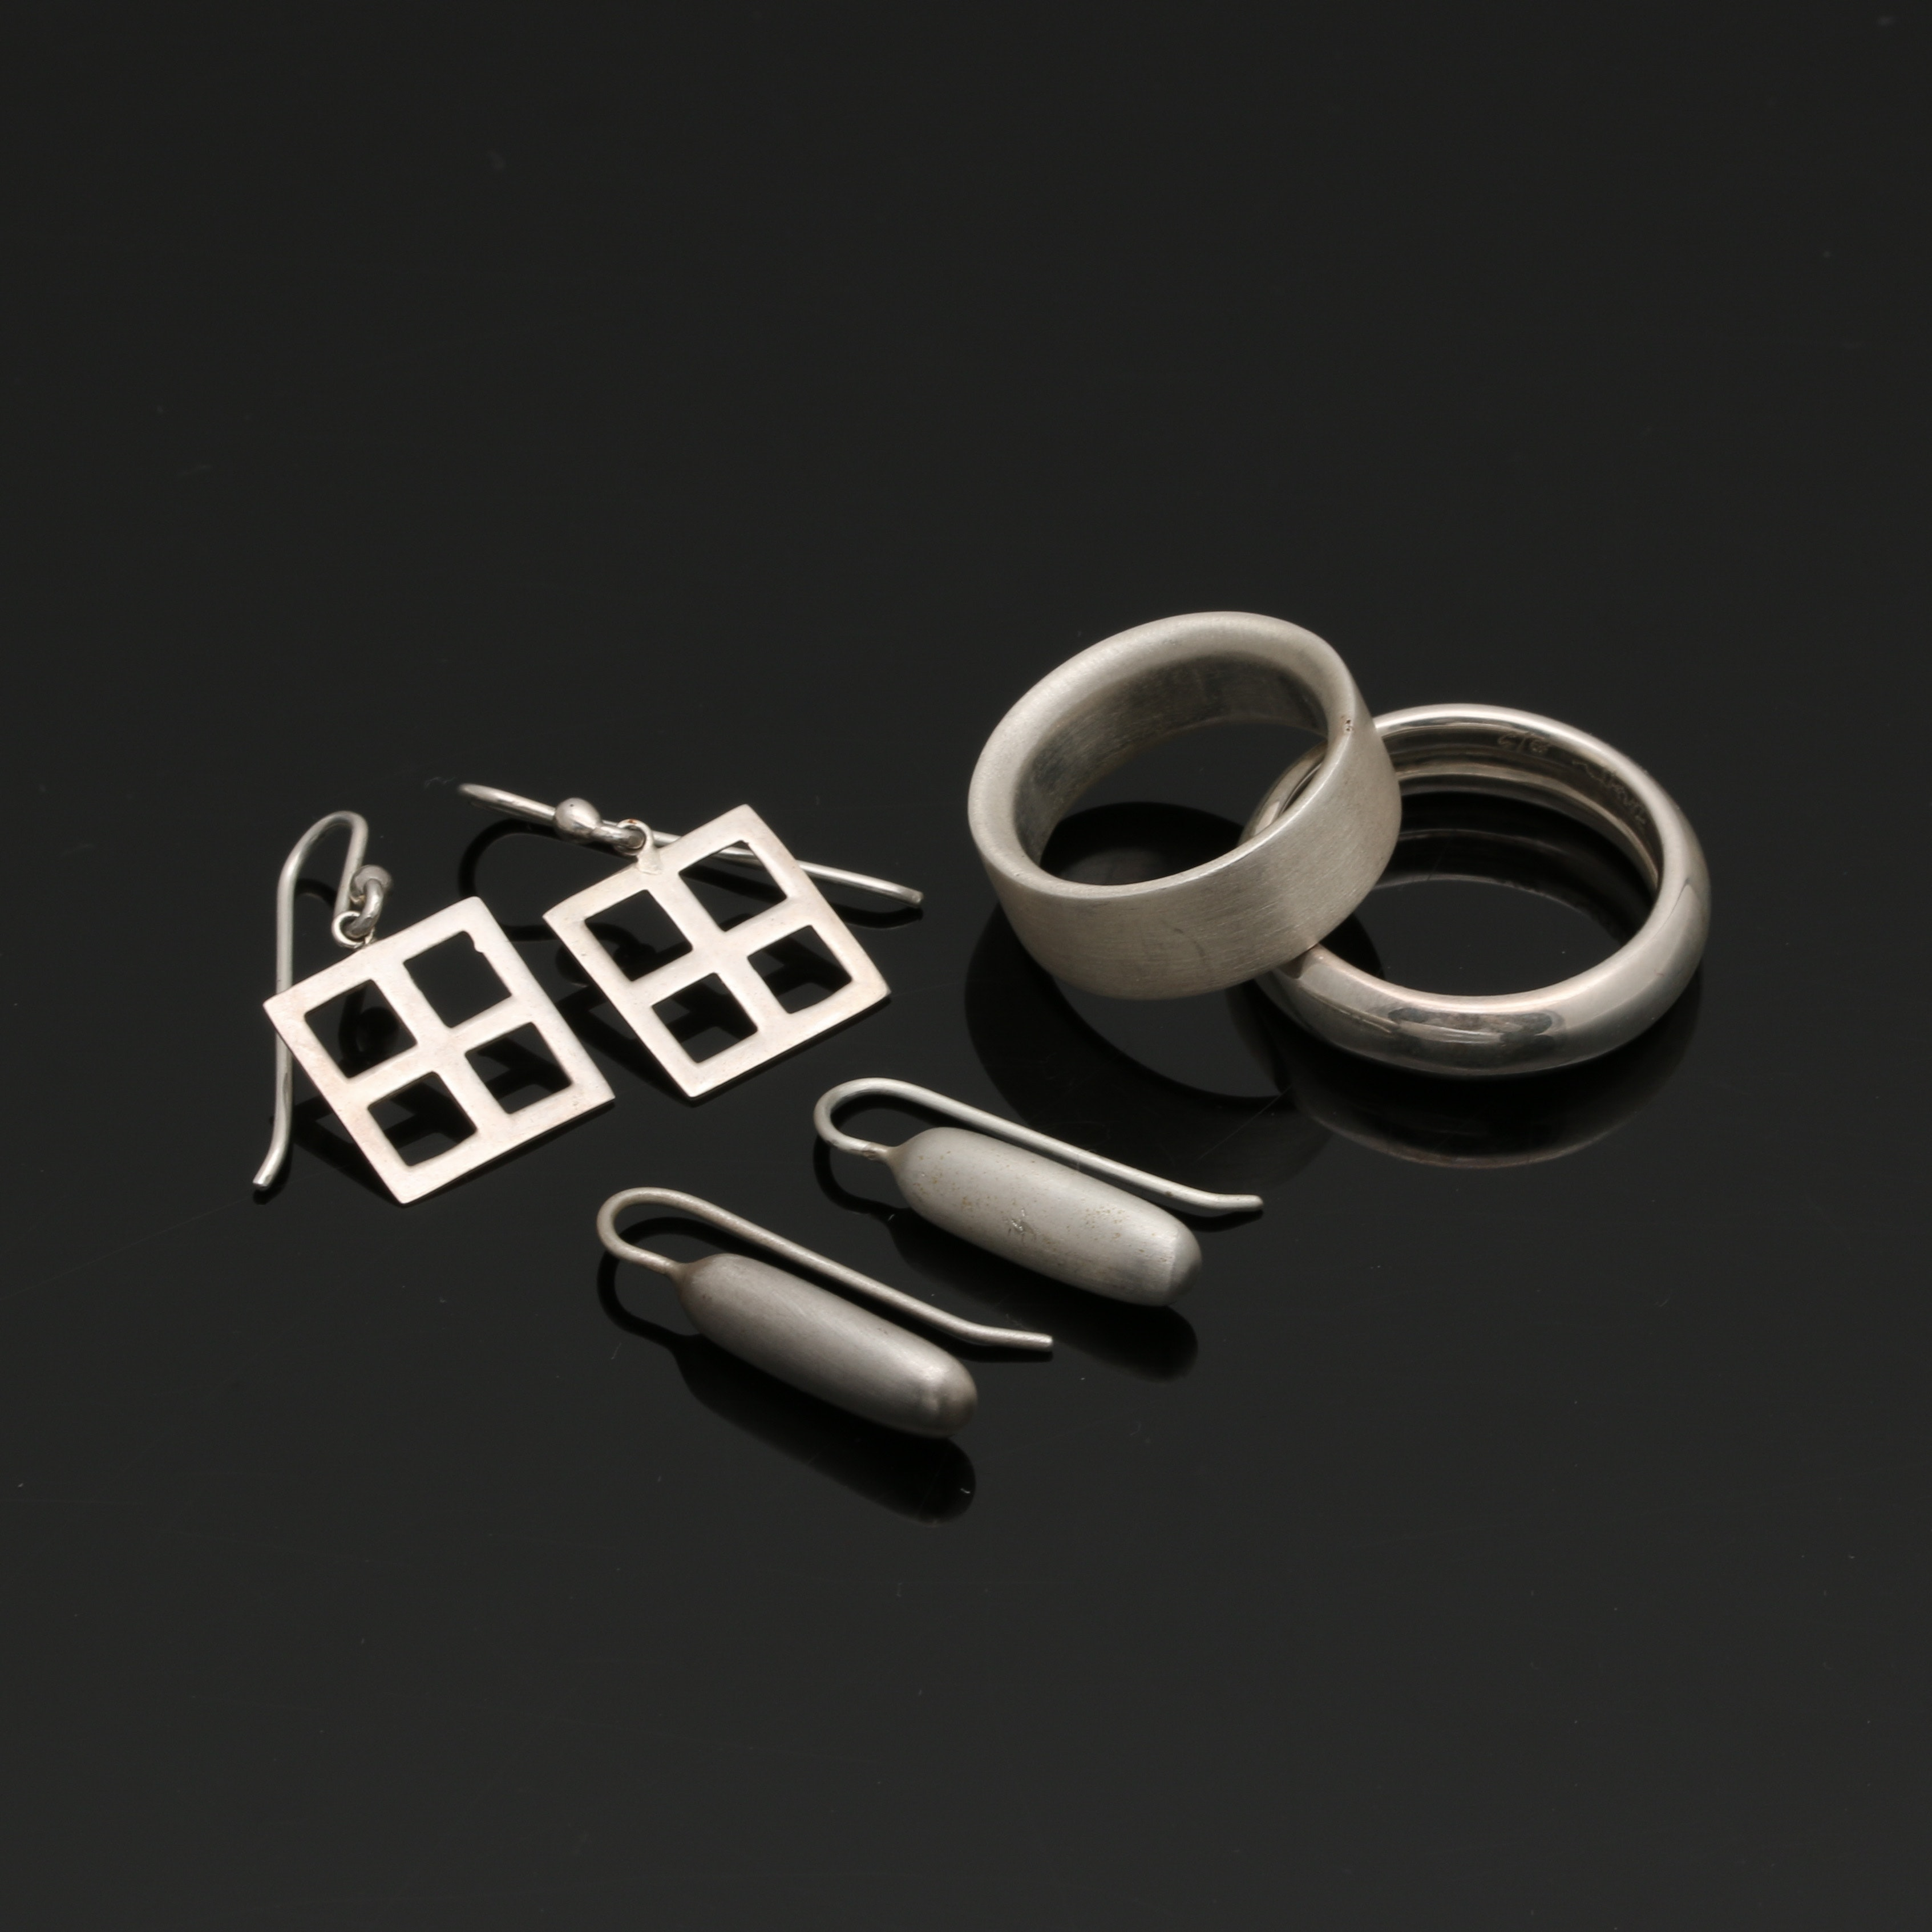 Assortment of Bill Schiffer Sterling Silver Rings and Earrings